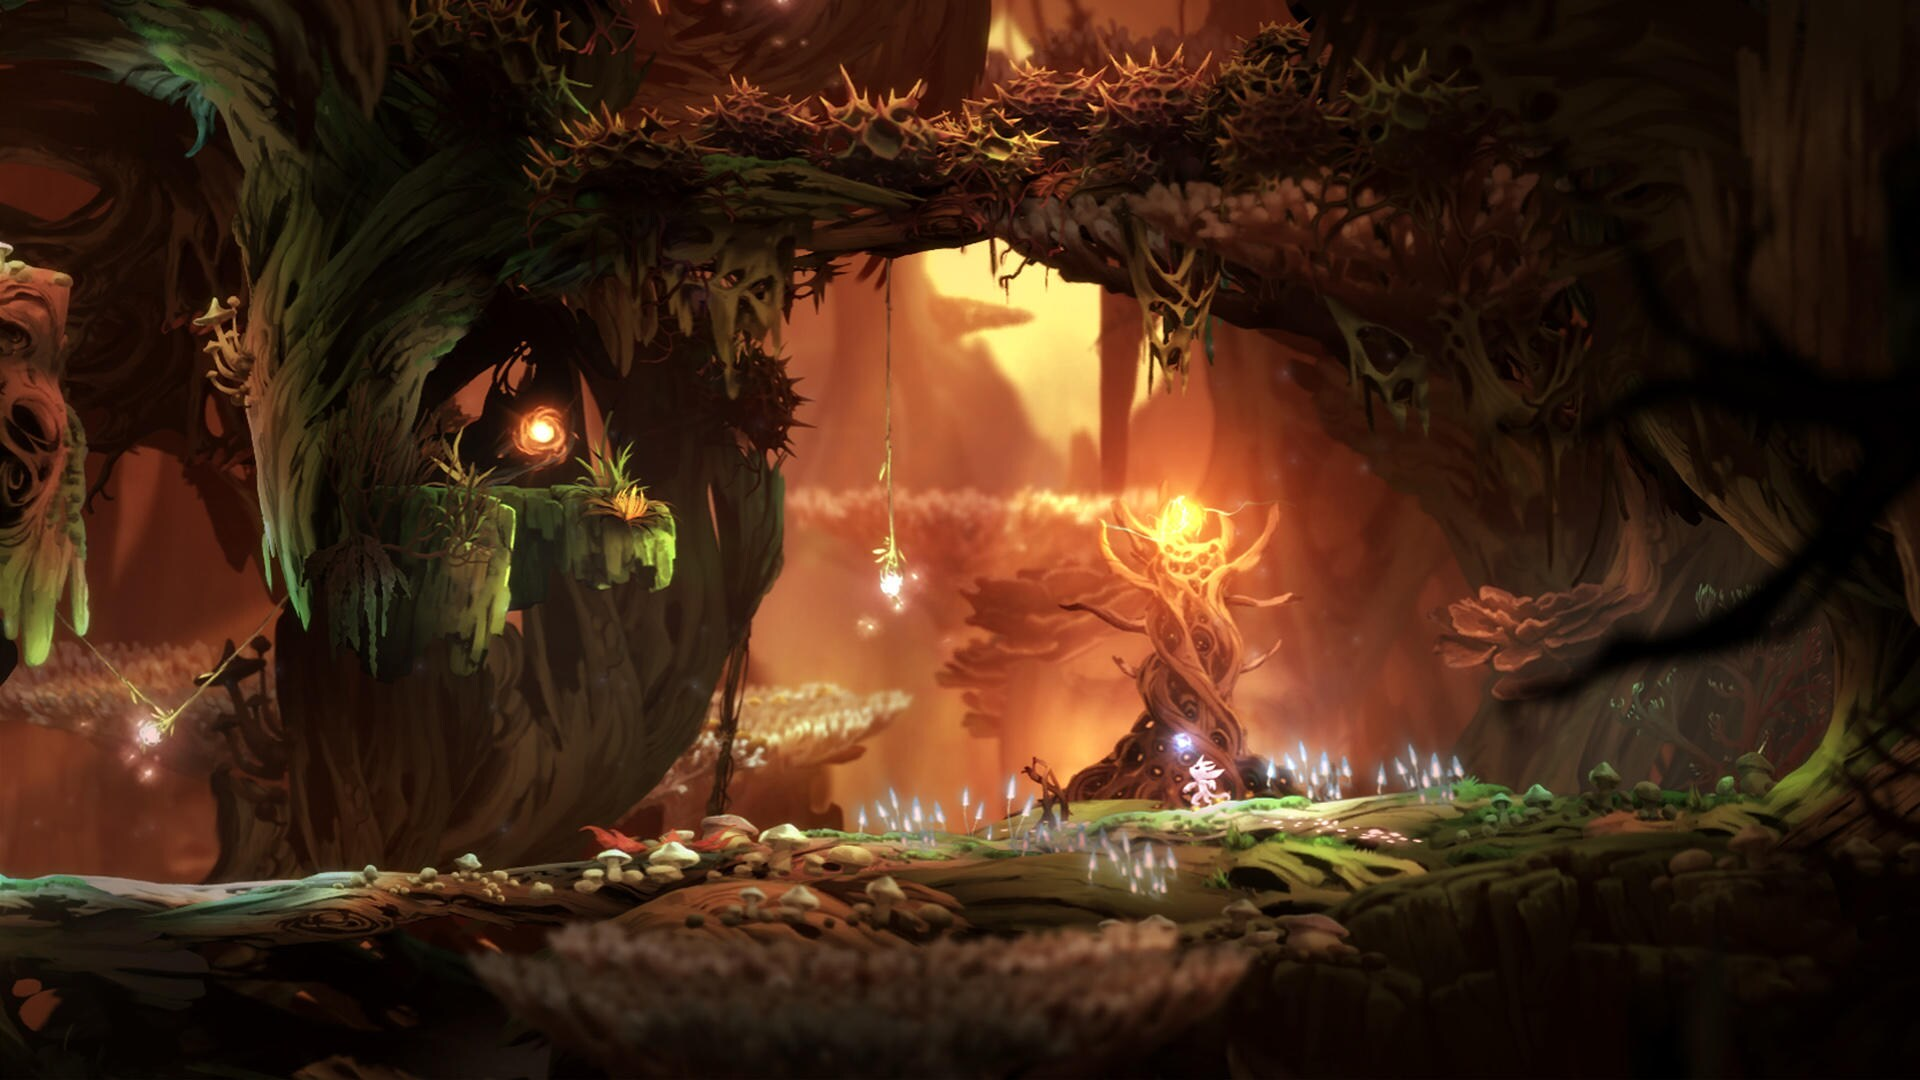 Ori and the Blind Forest from Moon Studios